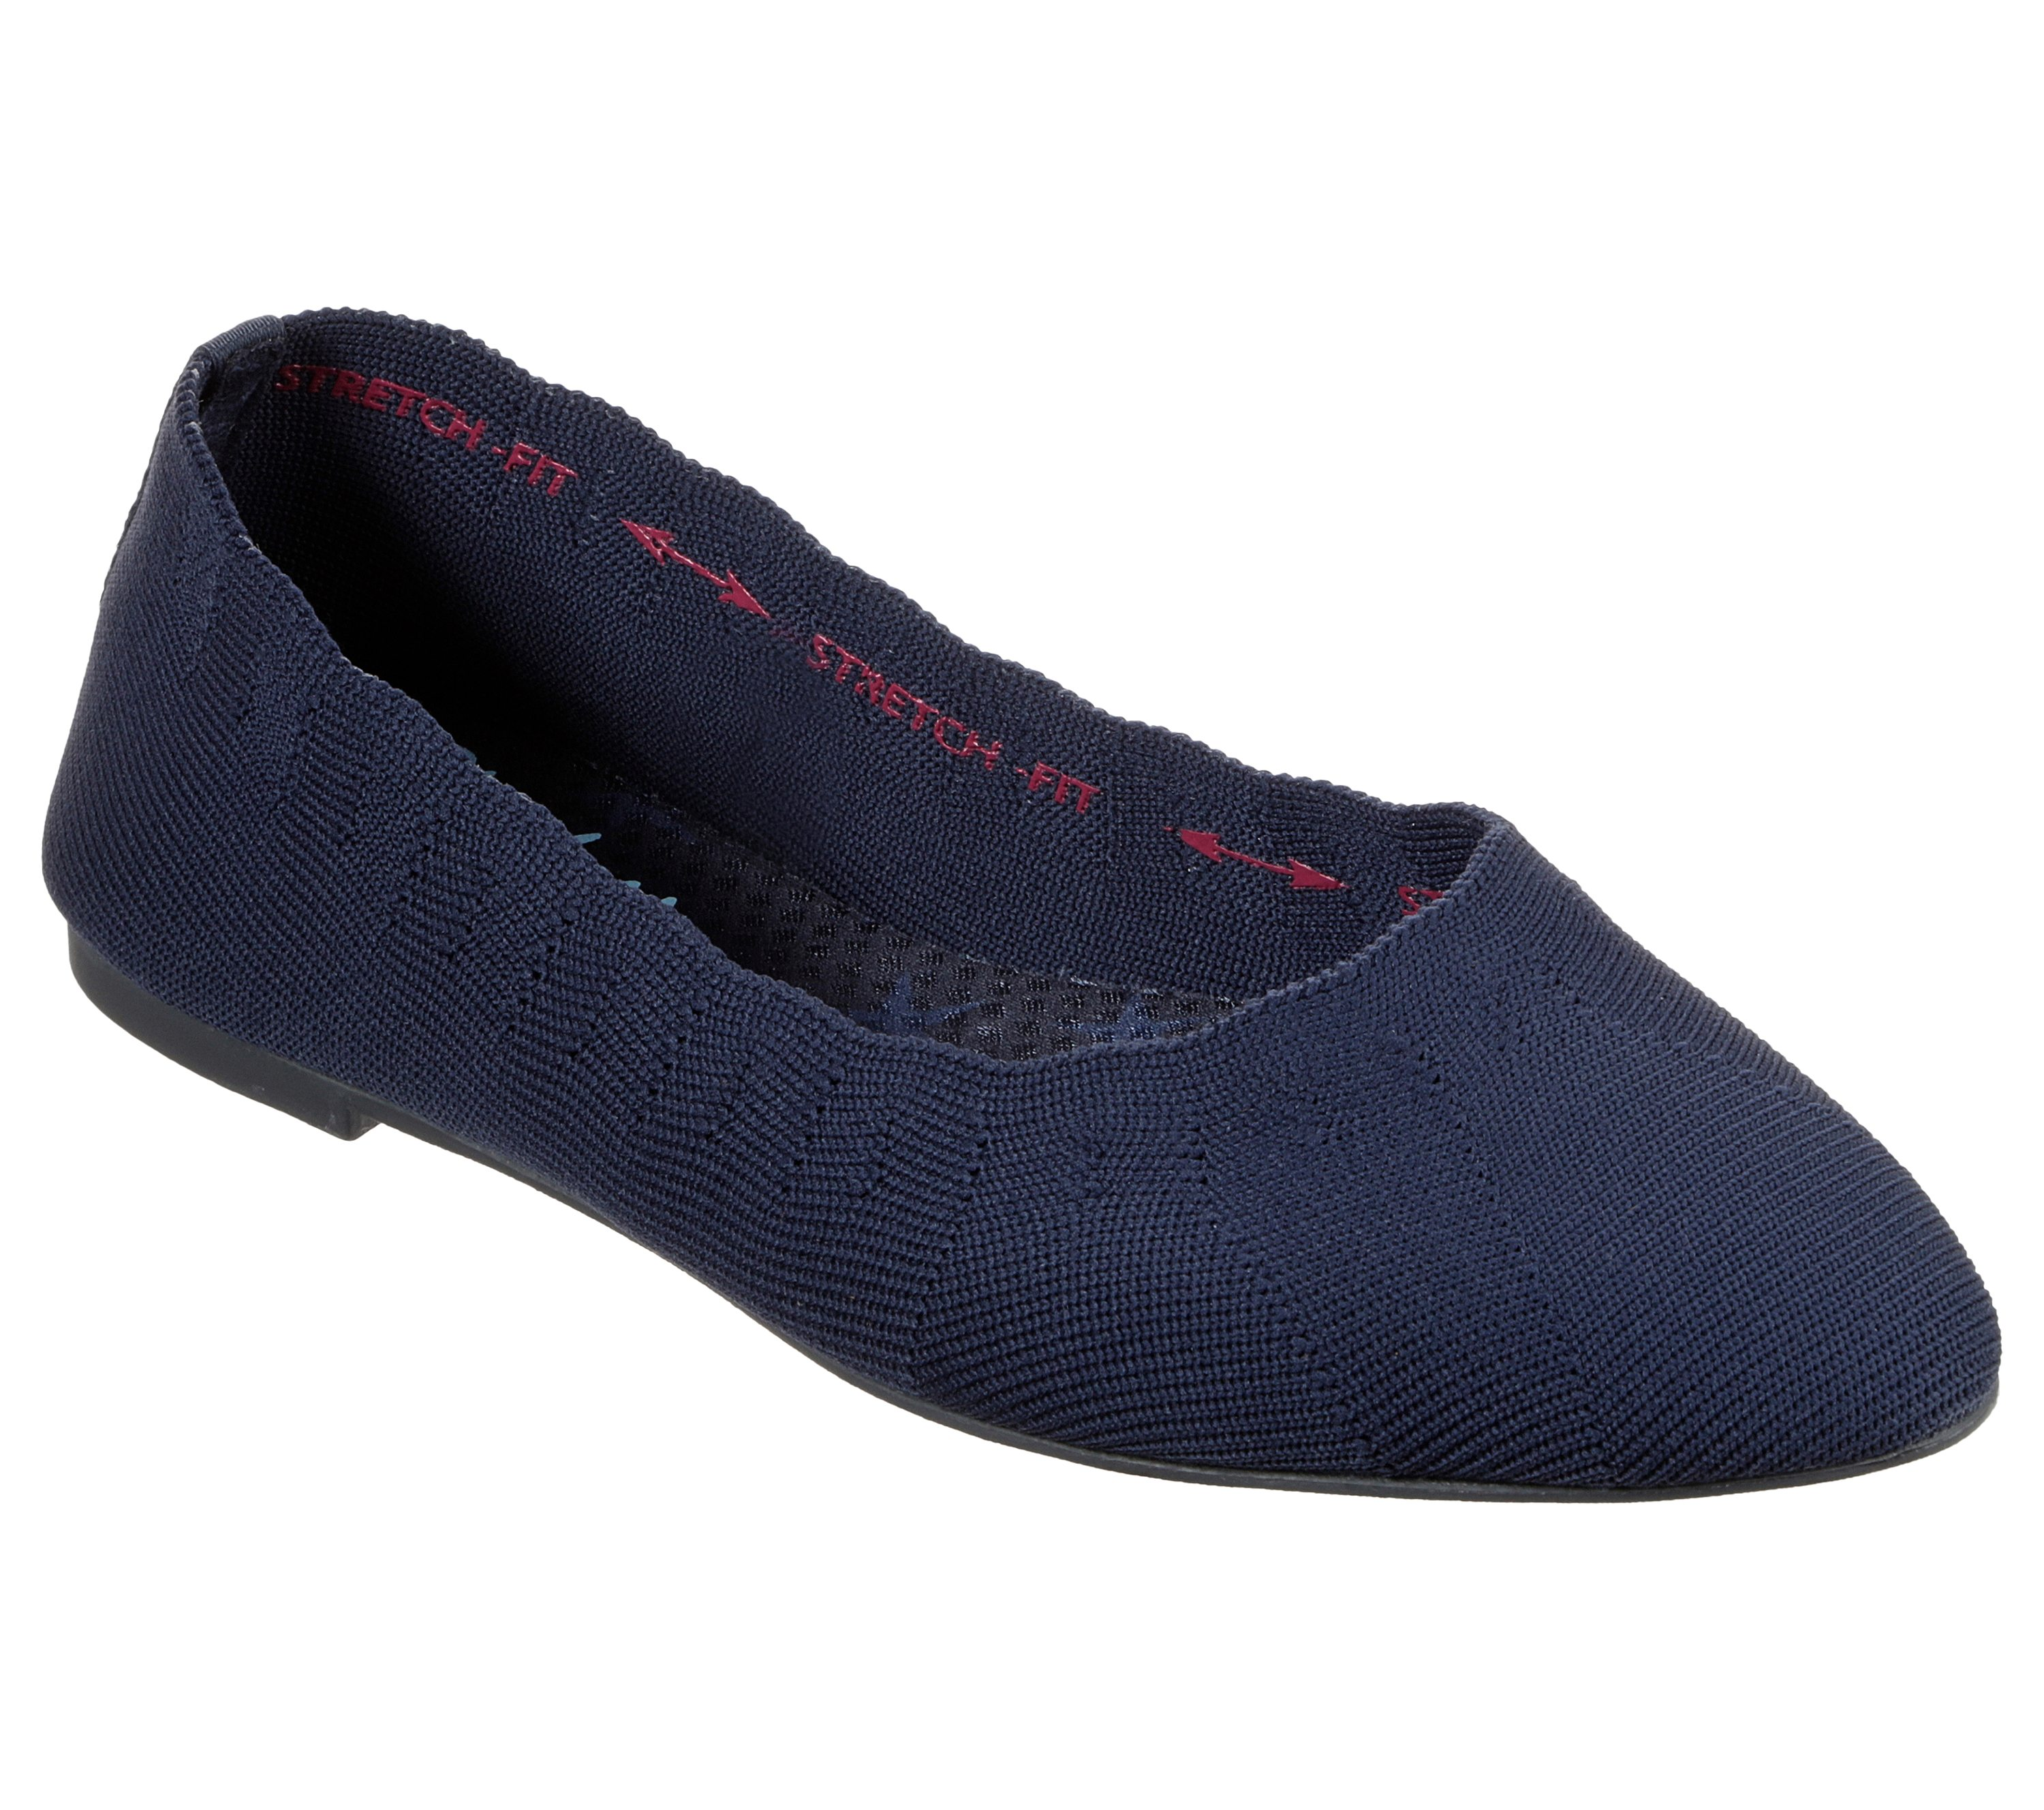 Shop the Cleo - Bewitch | SKECHERS